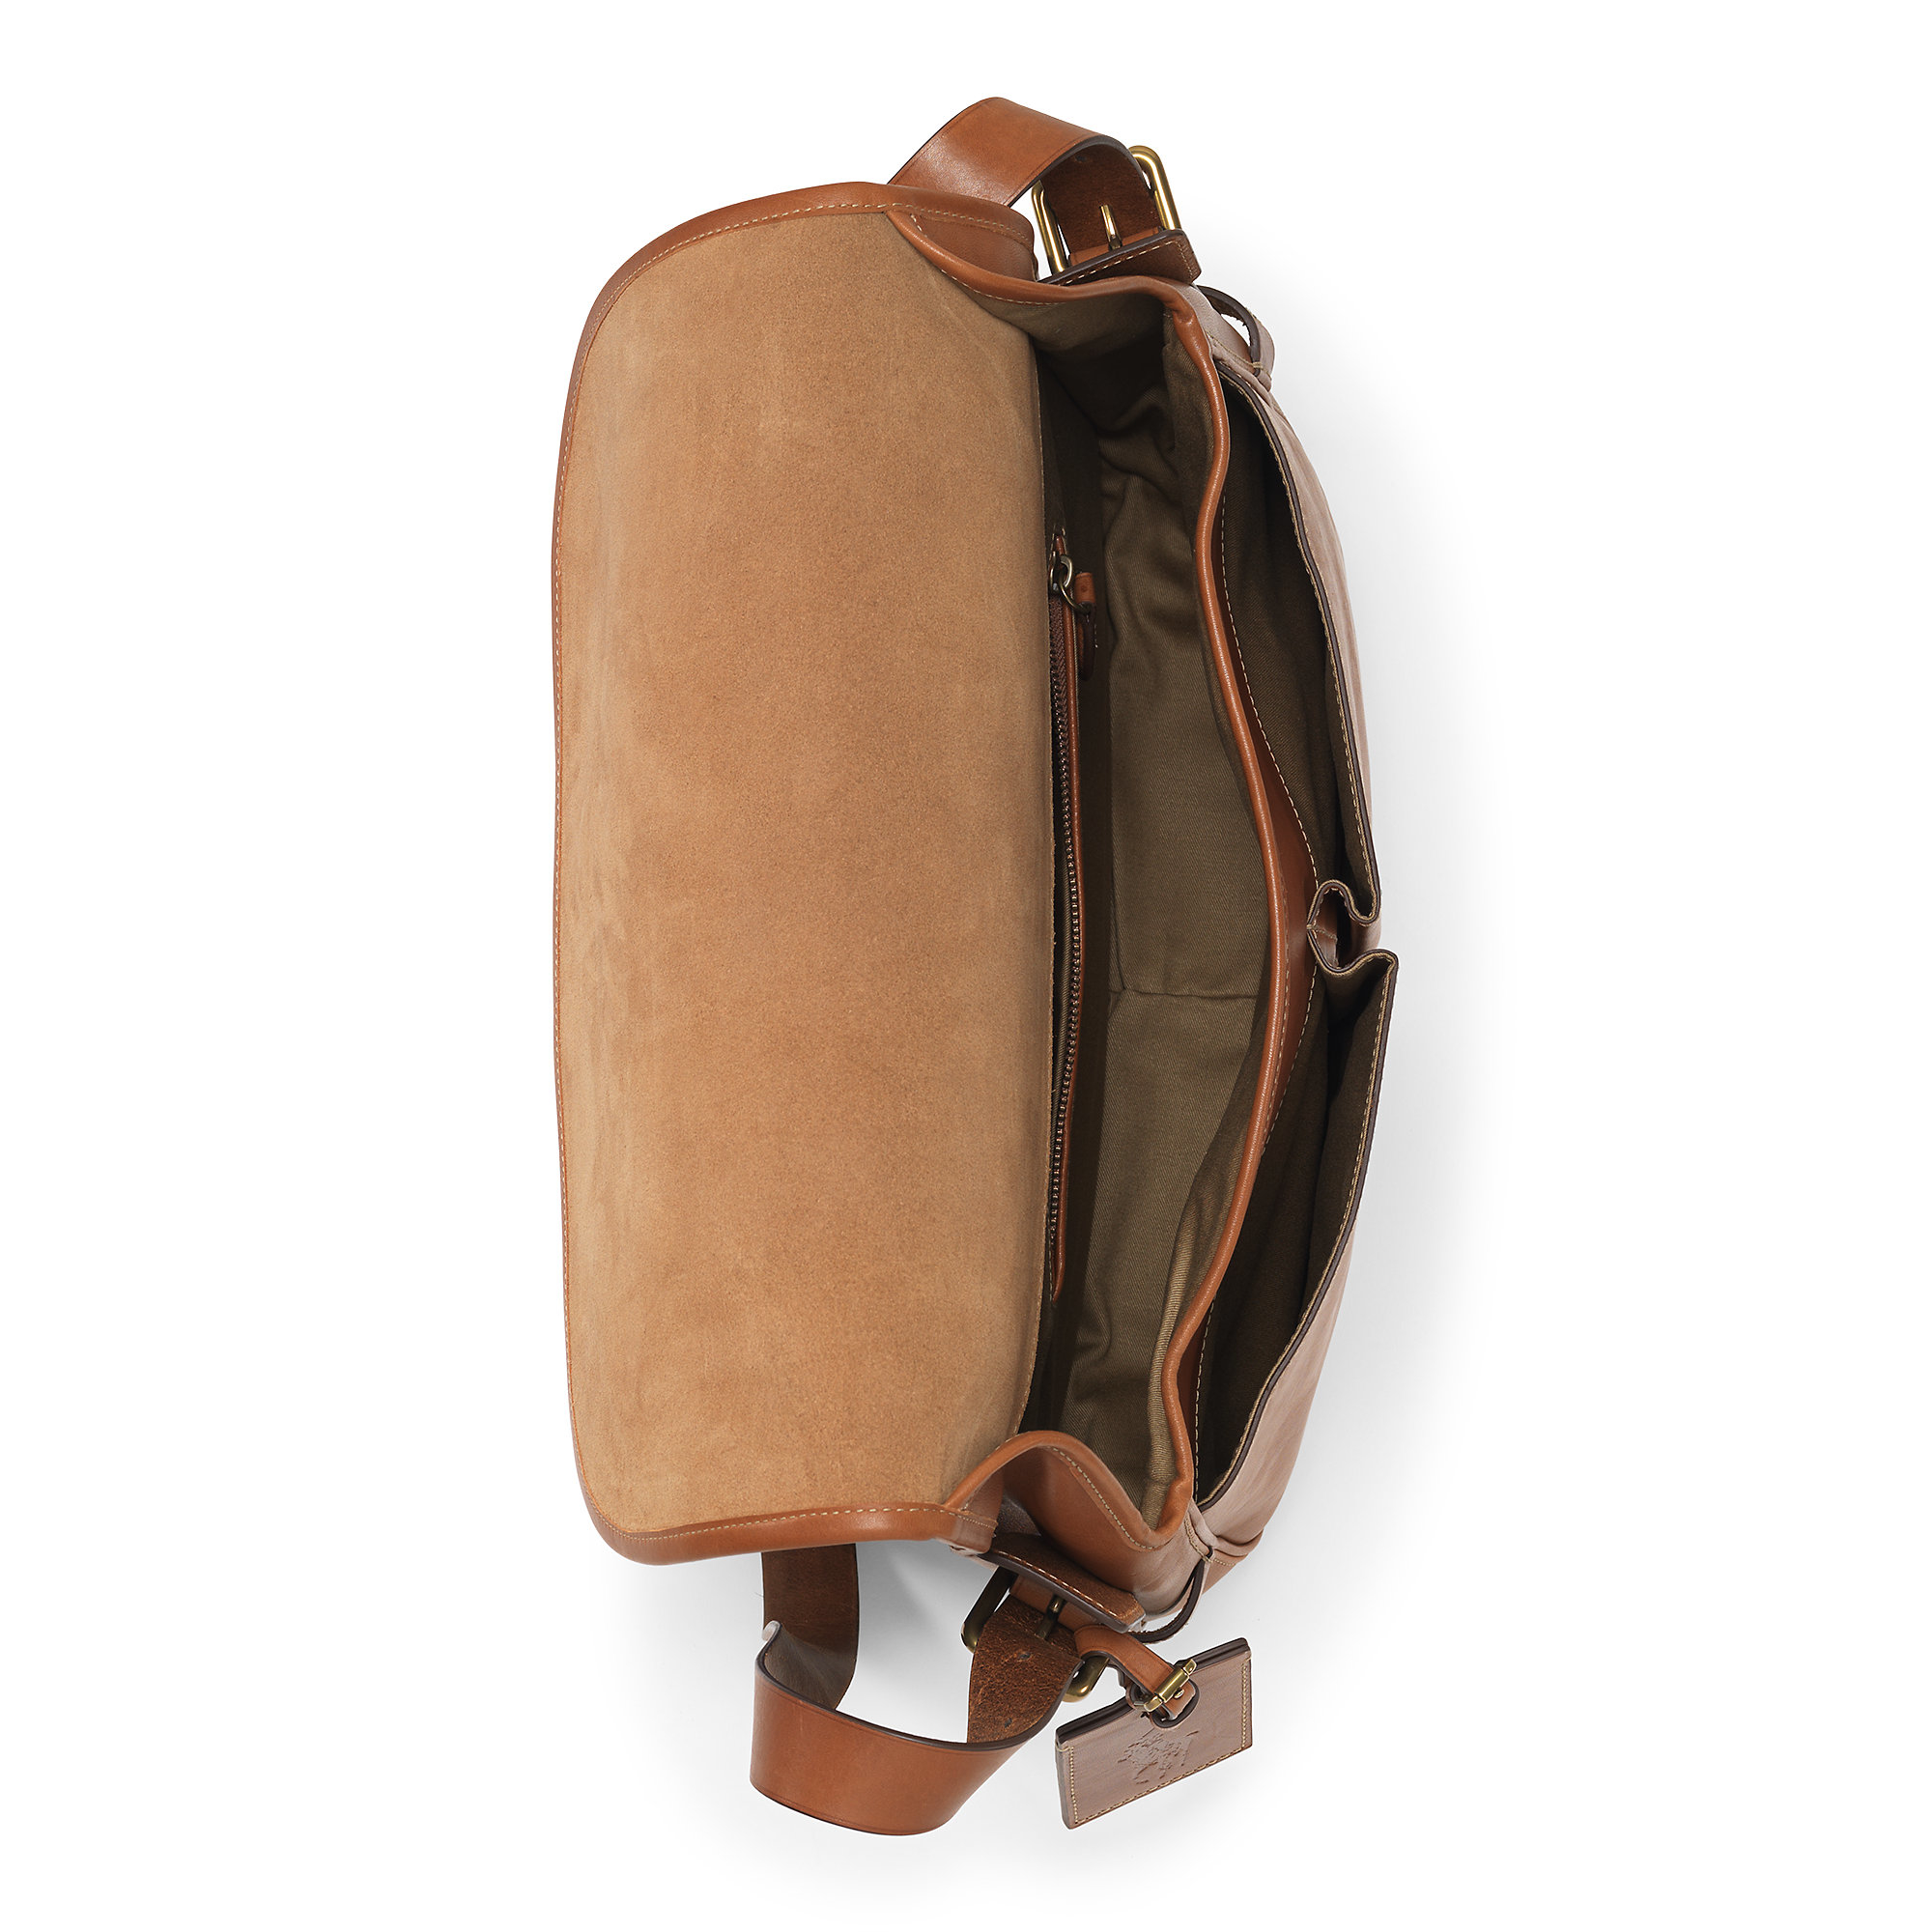 d3e2909445 Lyst - Polo Ralph Lauren Smooth Leather Messenger Bag in Brown for Men